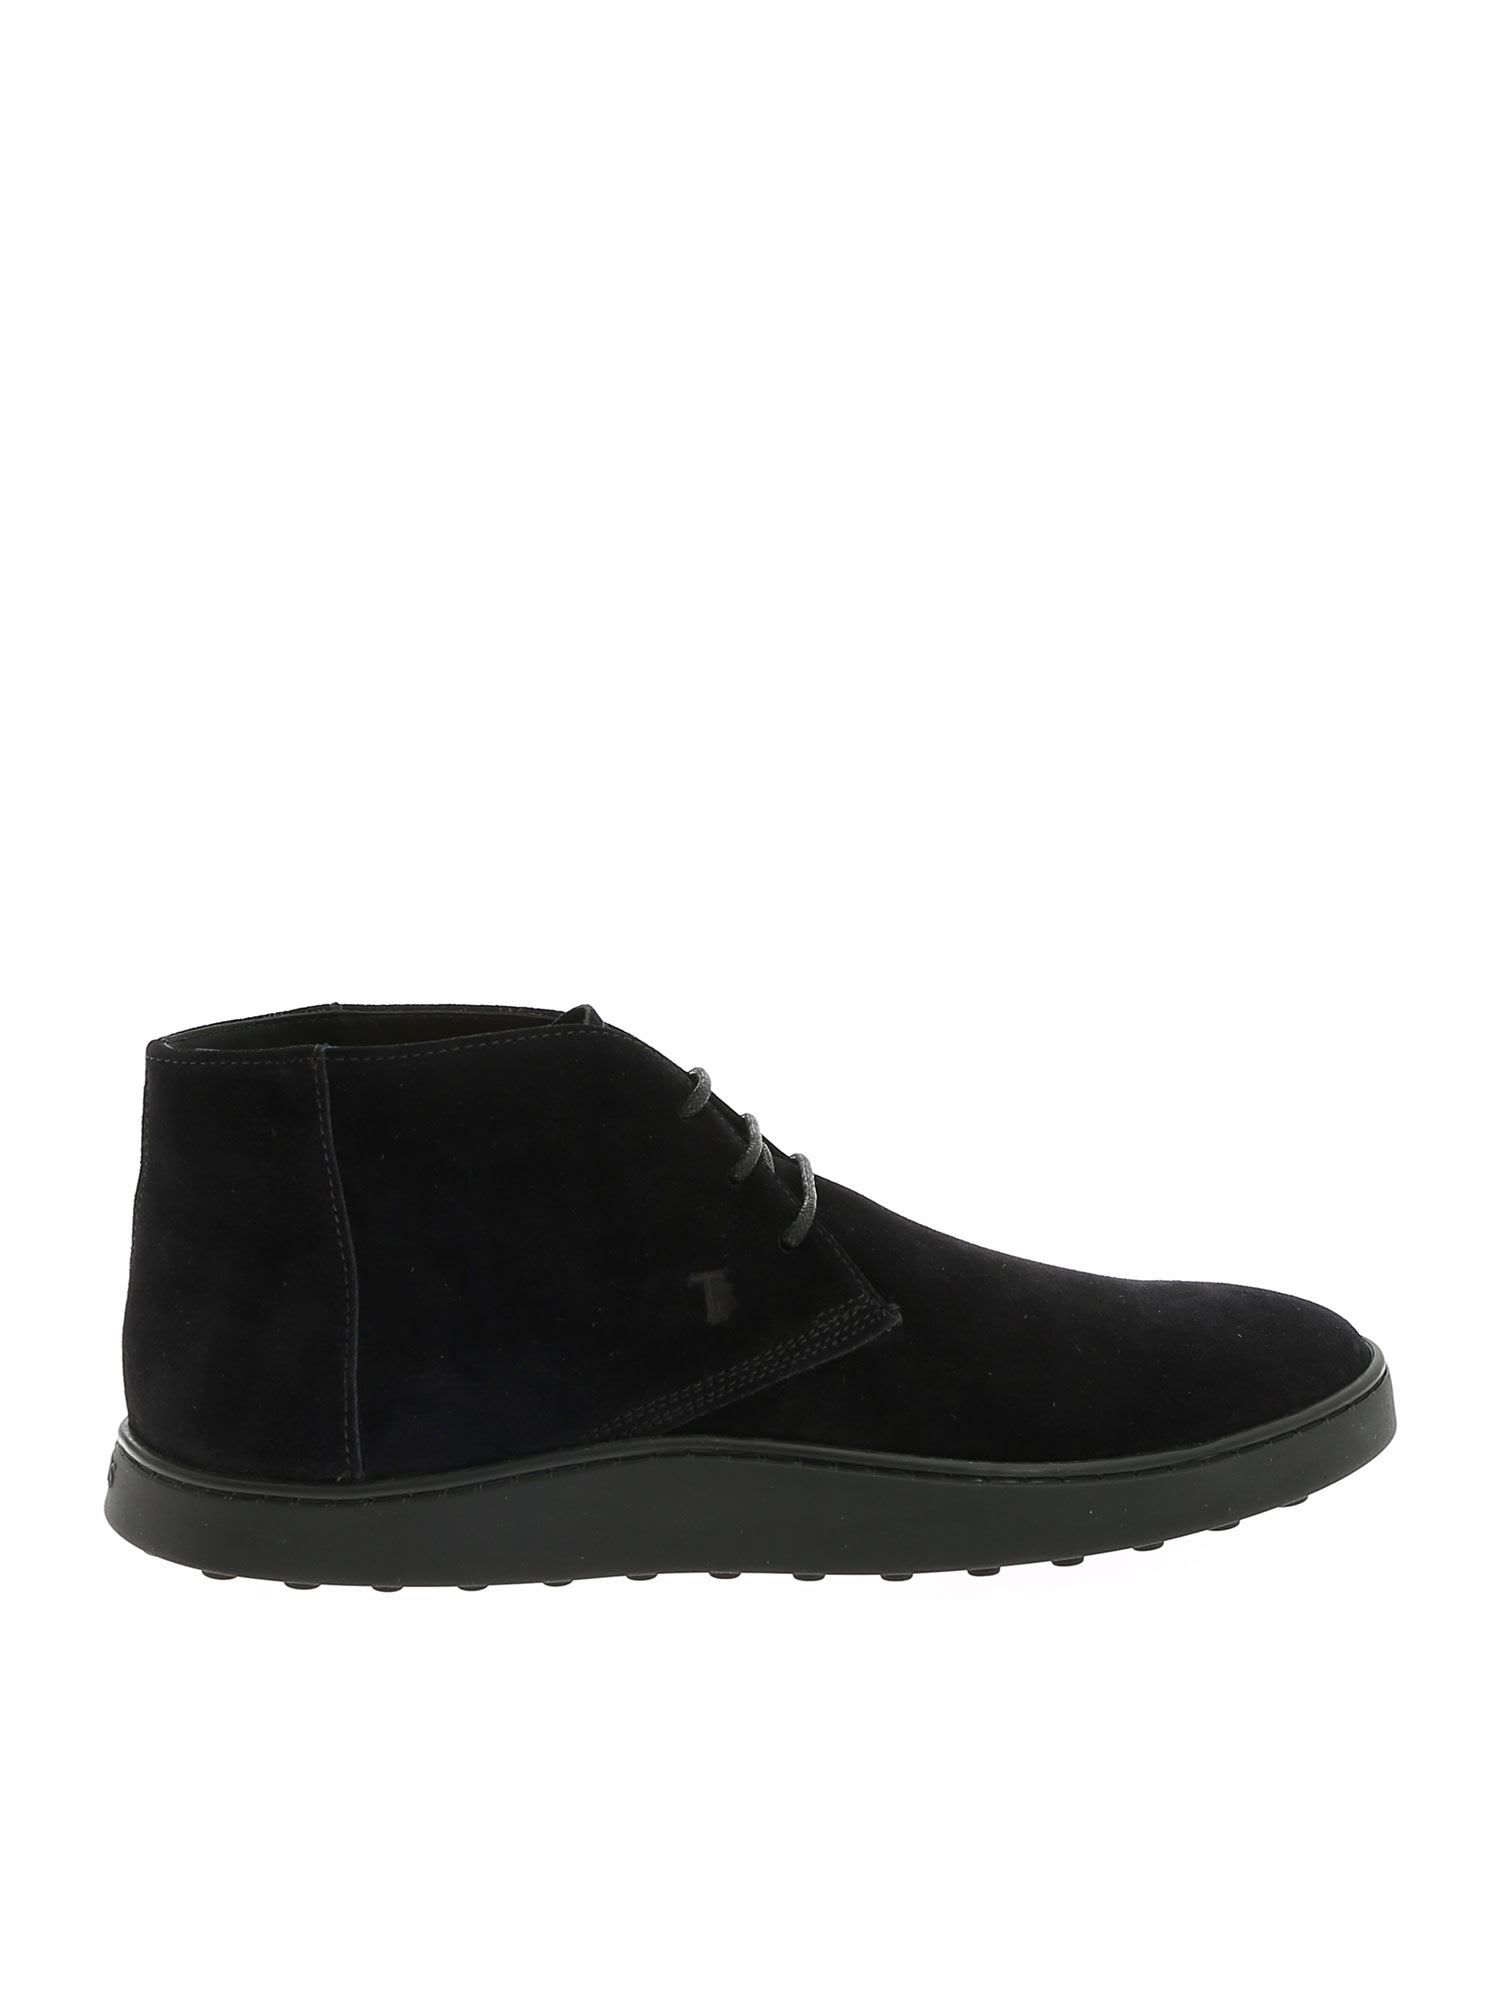 Tods Tabbed Sole Ankle Boots